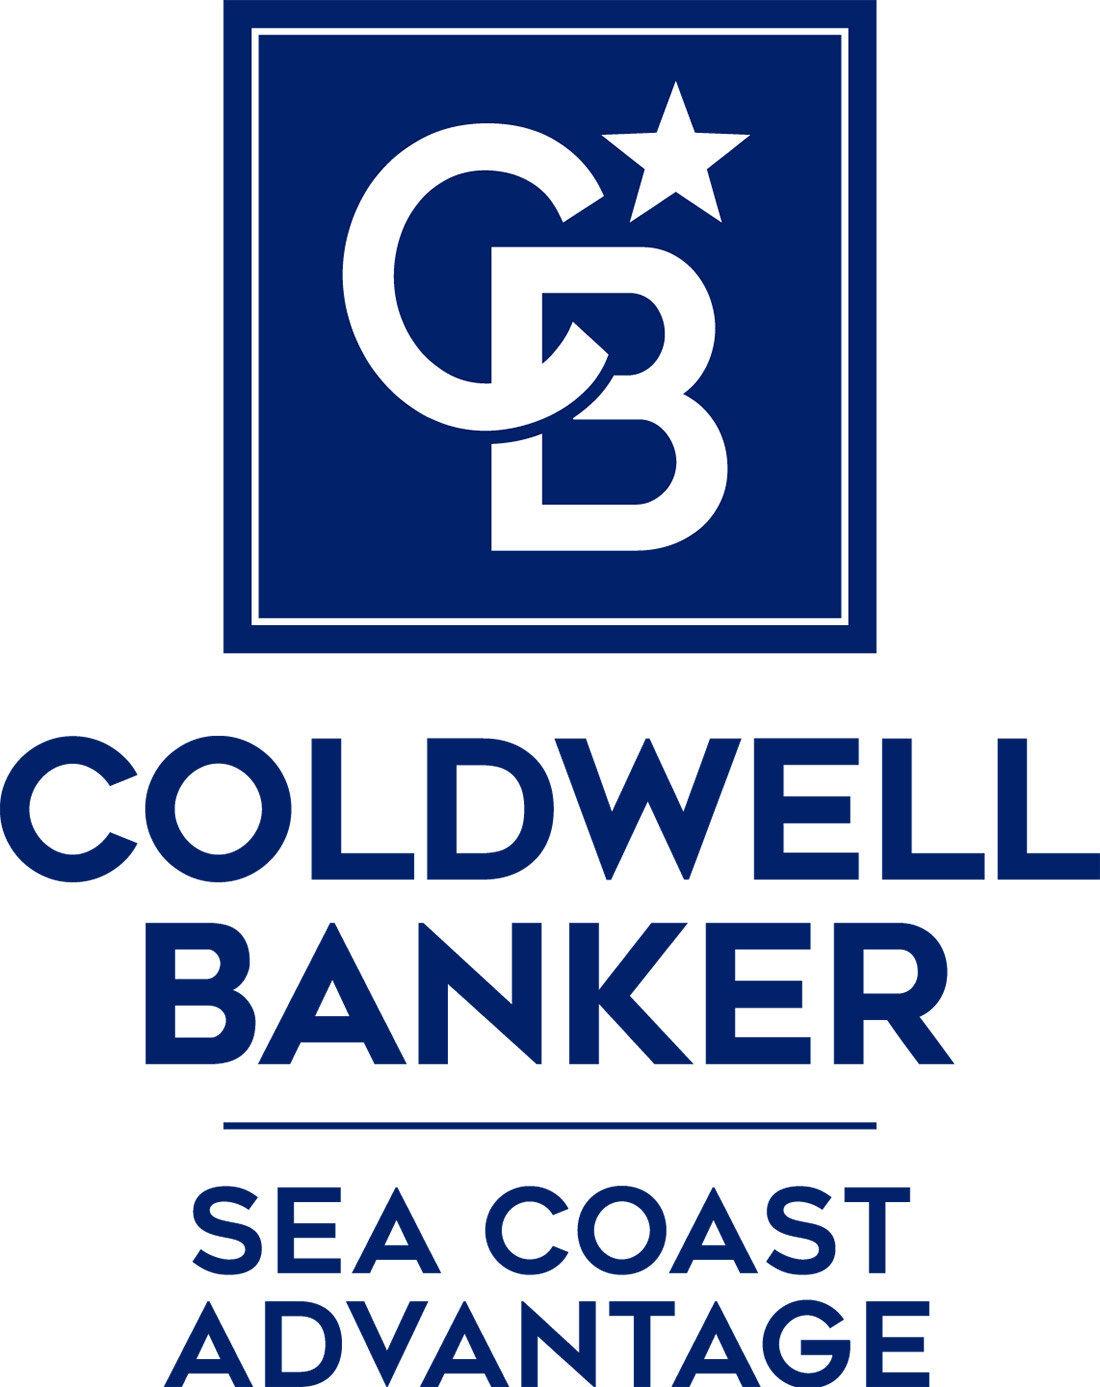 Frances Warner - Coldwell Banker Sea Coast Advantage Realty Logo